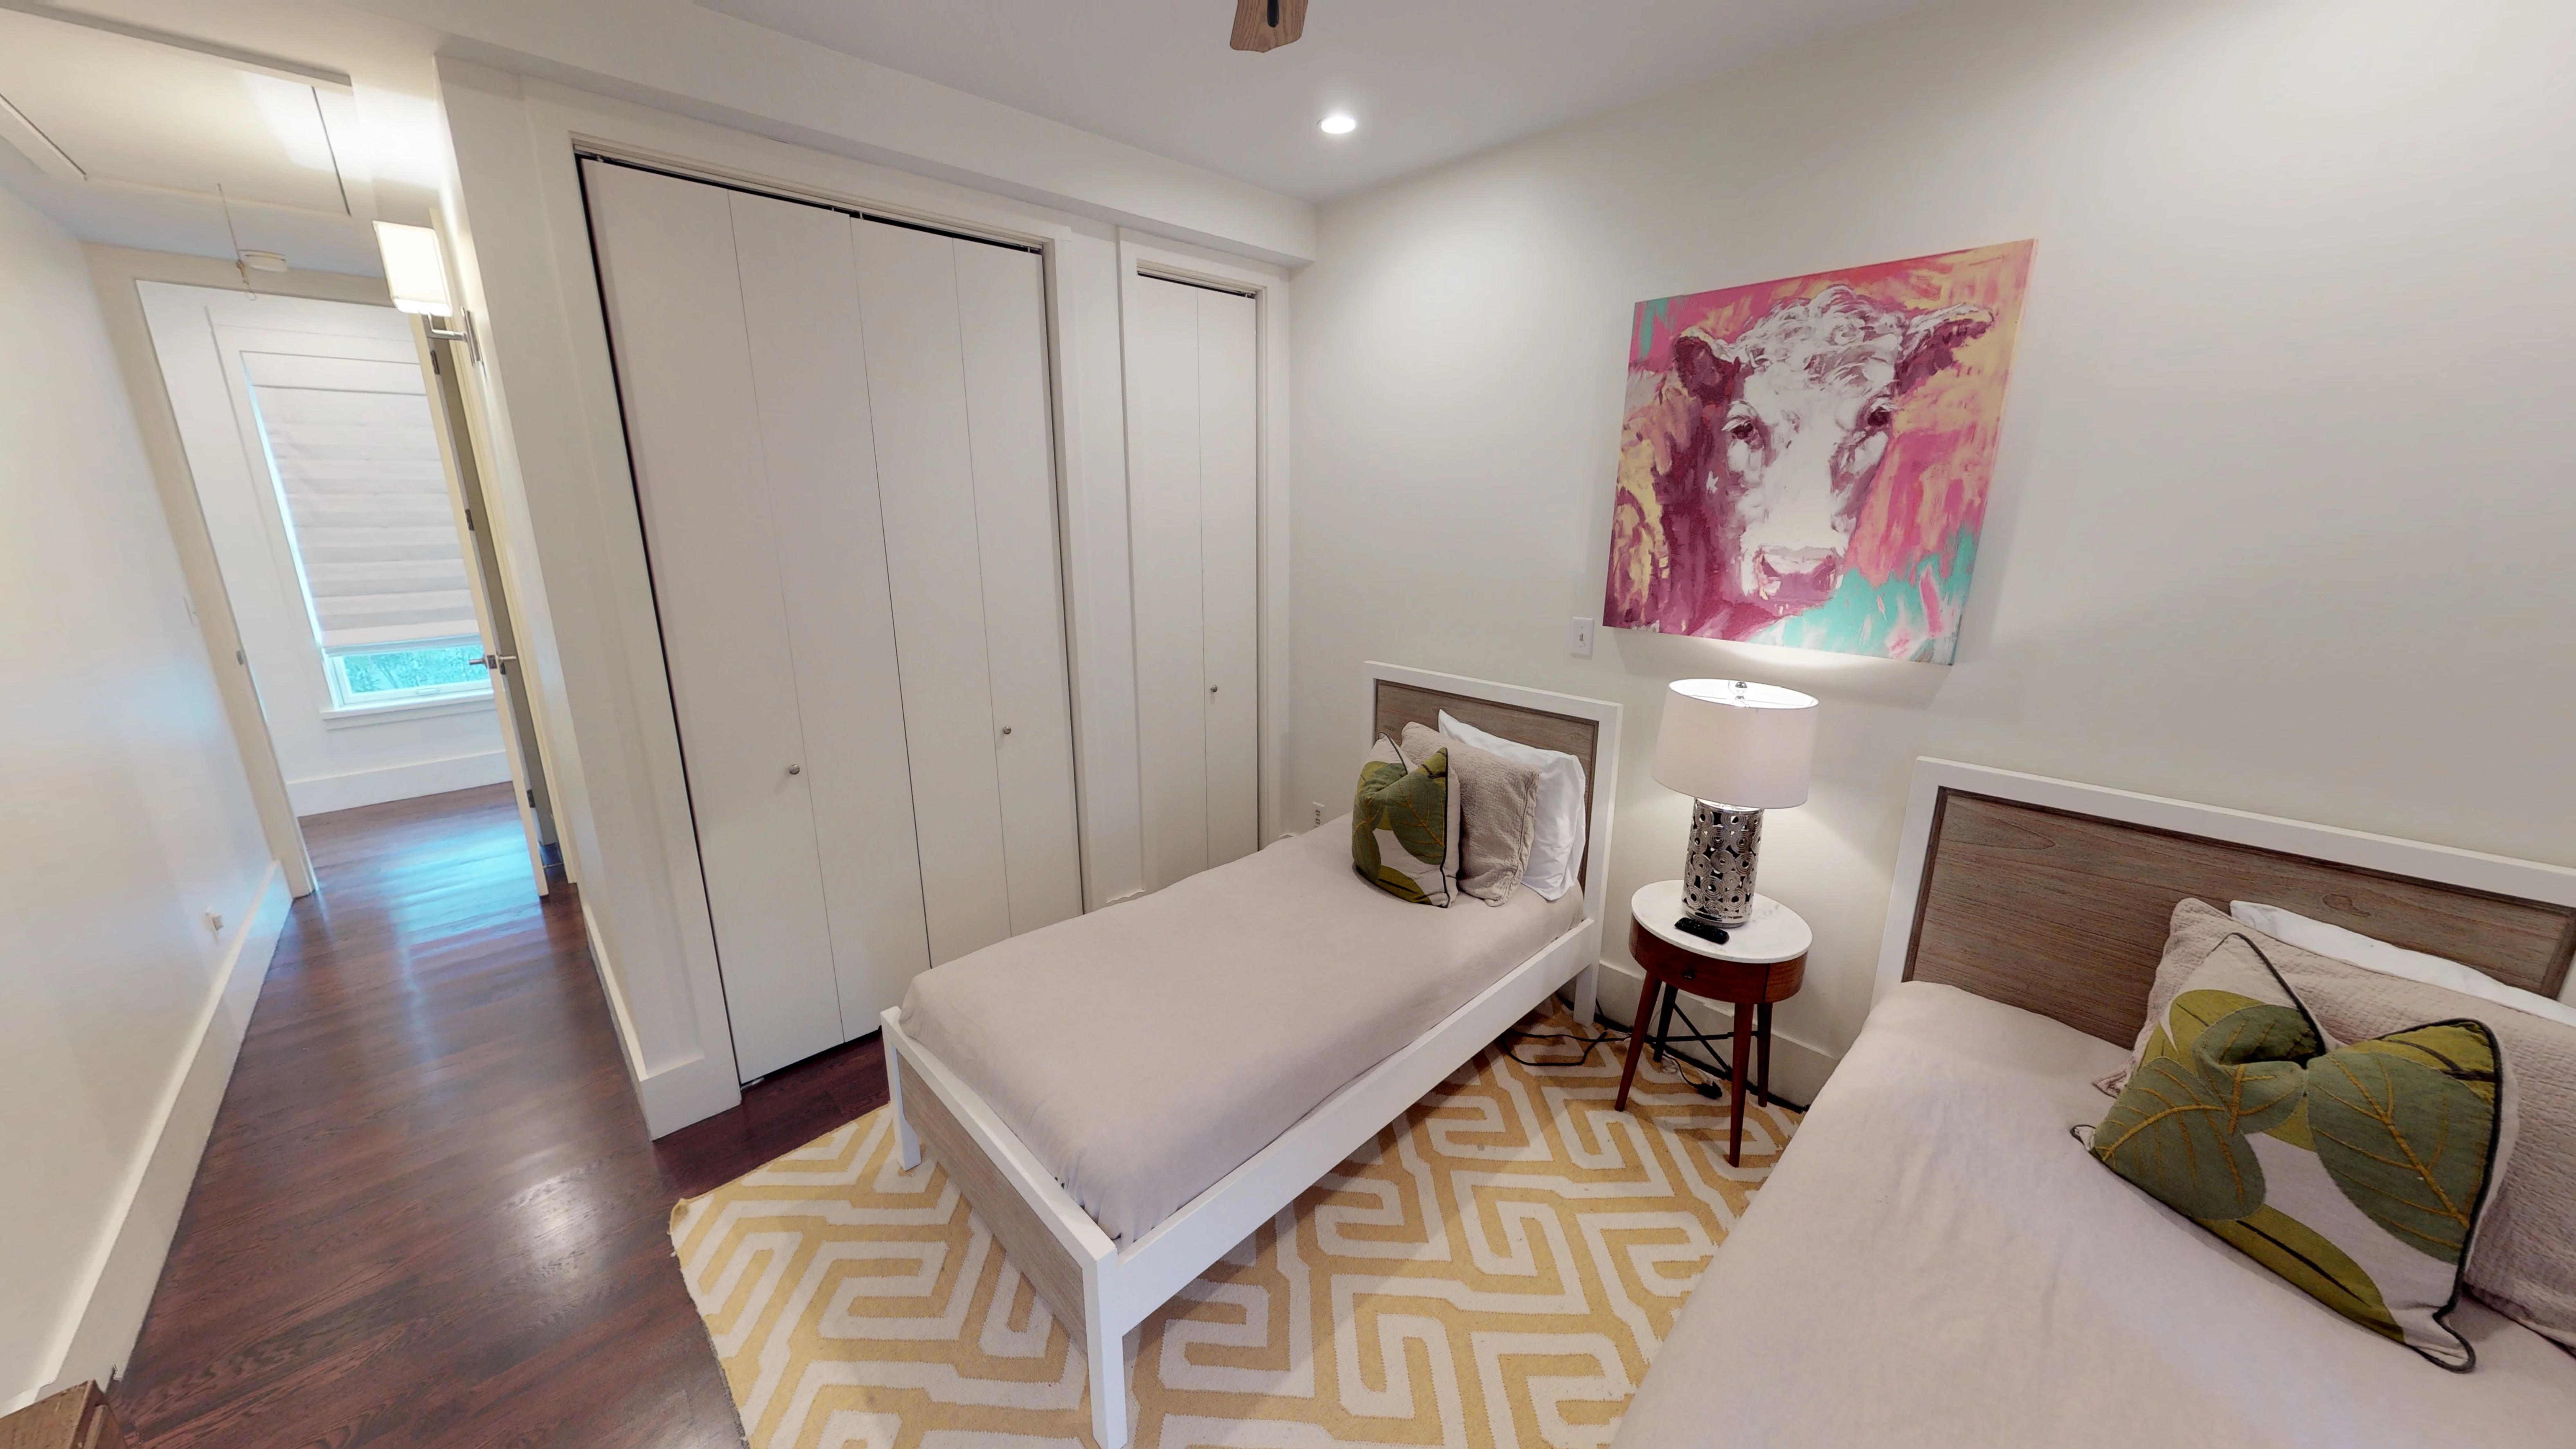 Twin platform beds and colorful artwork